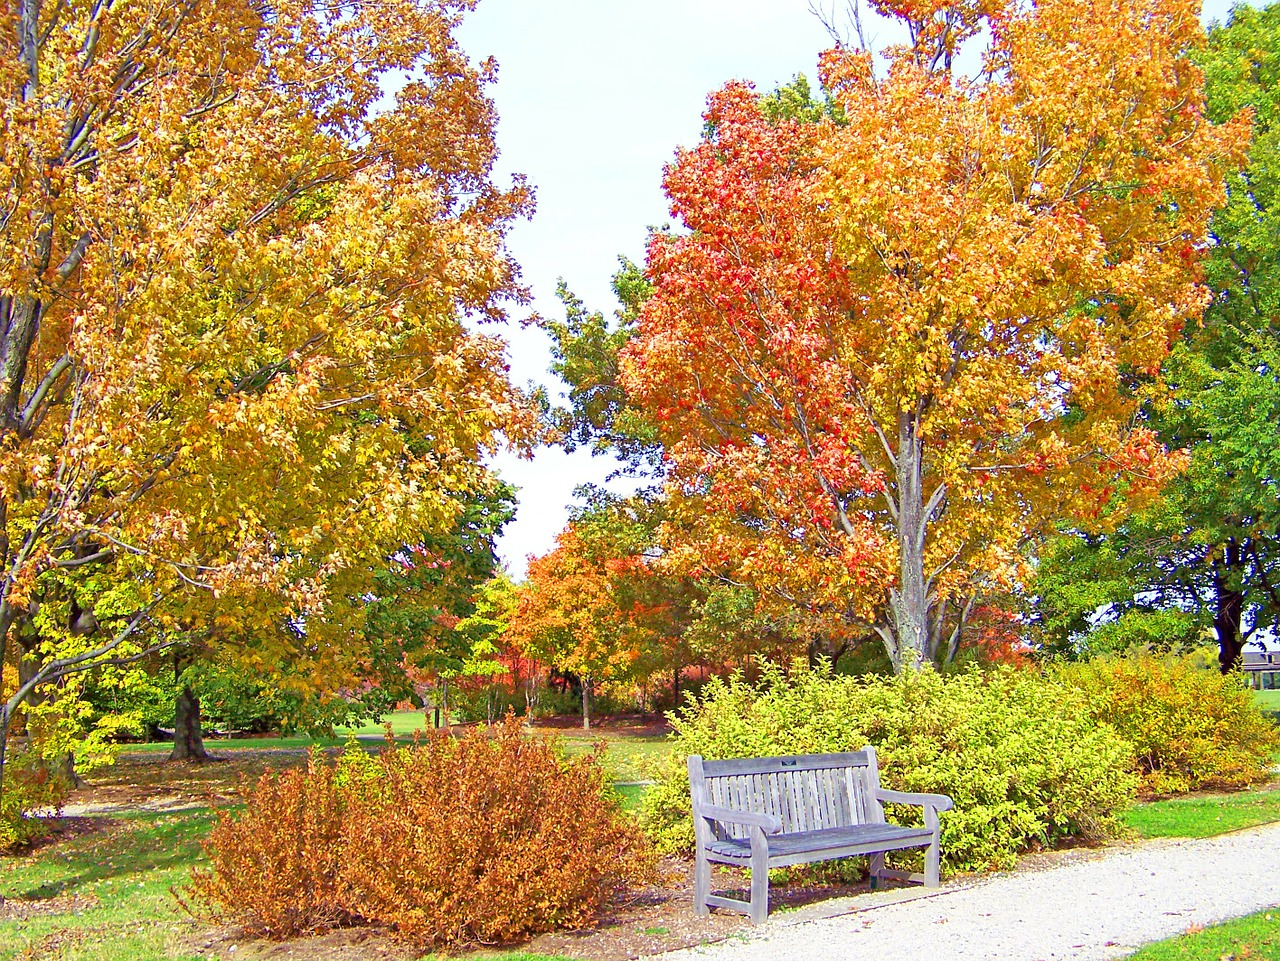 A Homeowner's Guide to Early Autumn Landscape Preparation